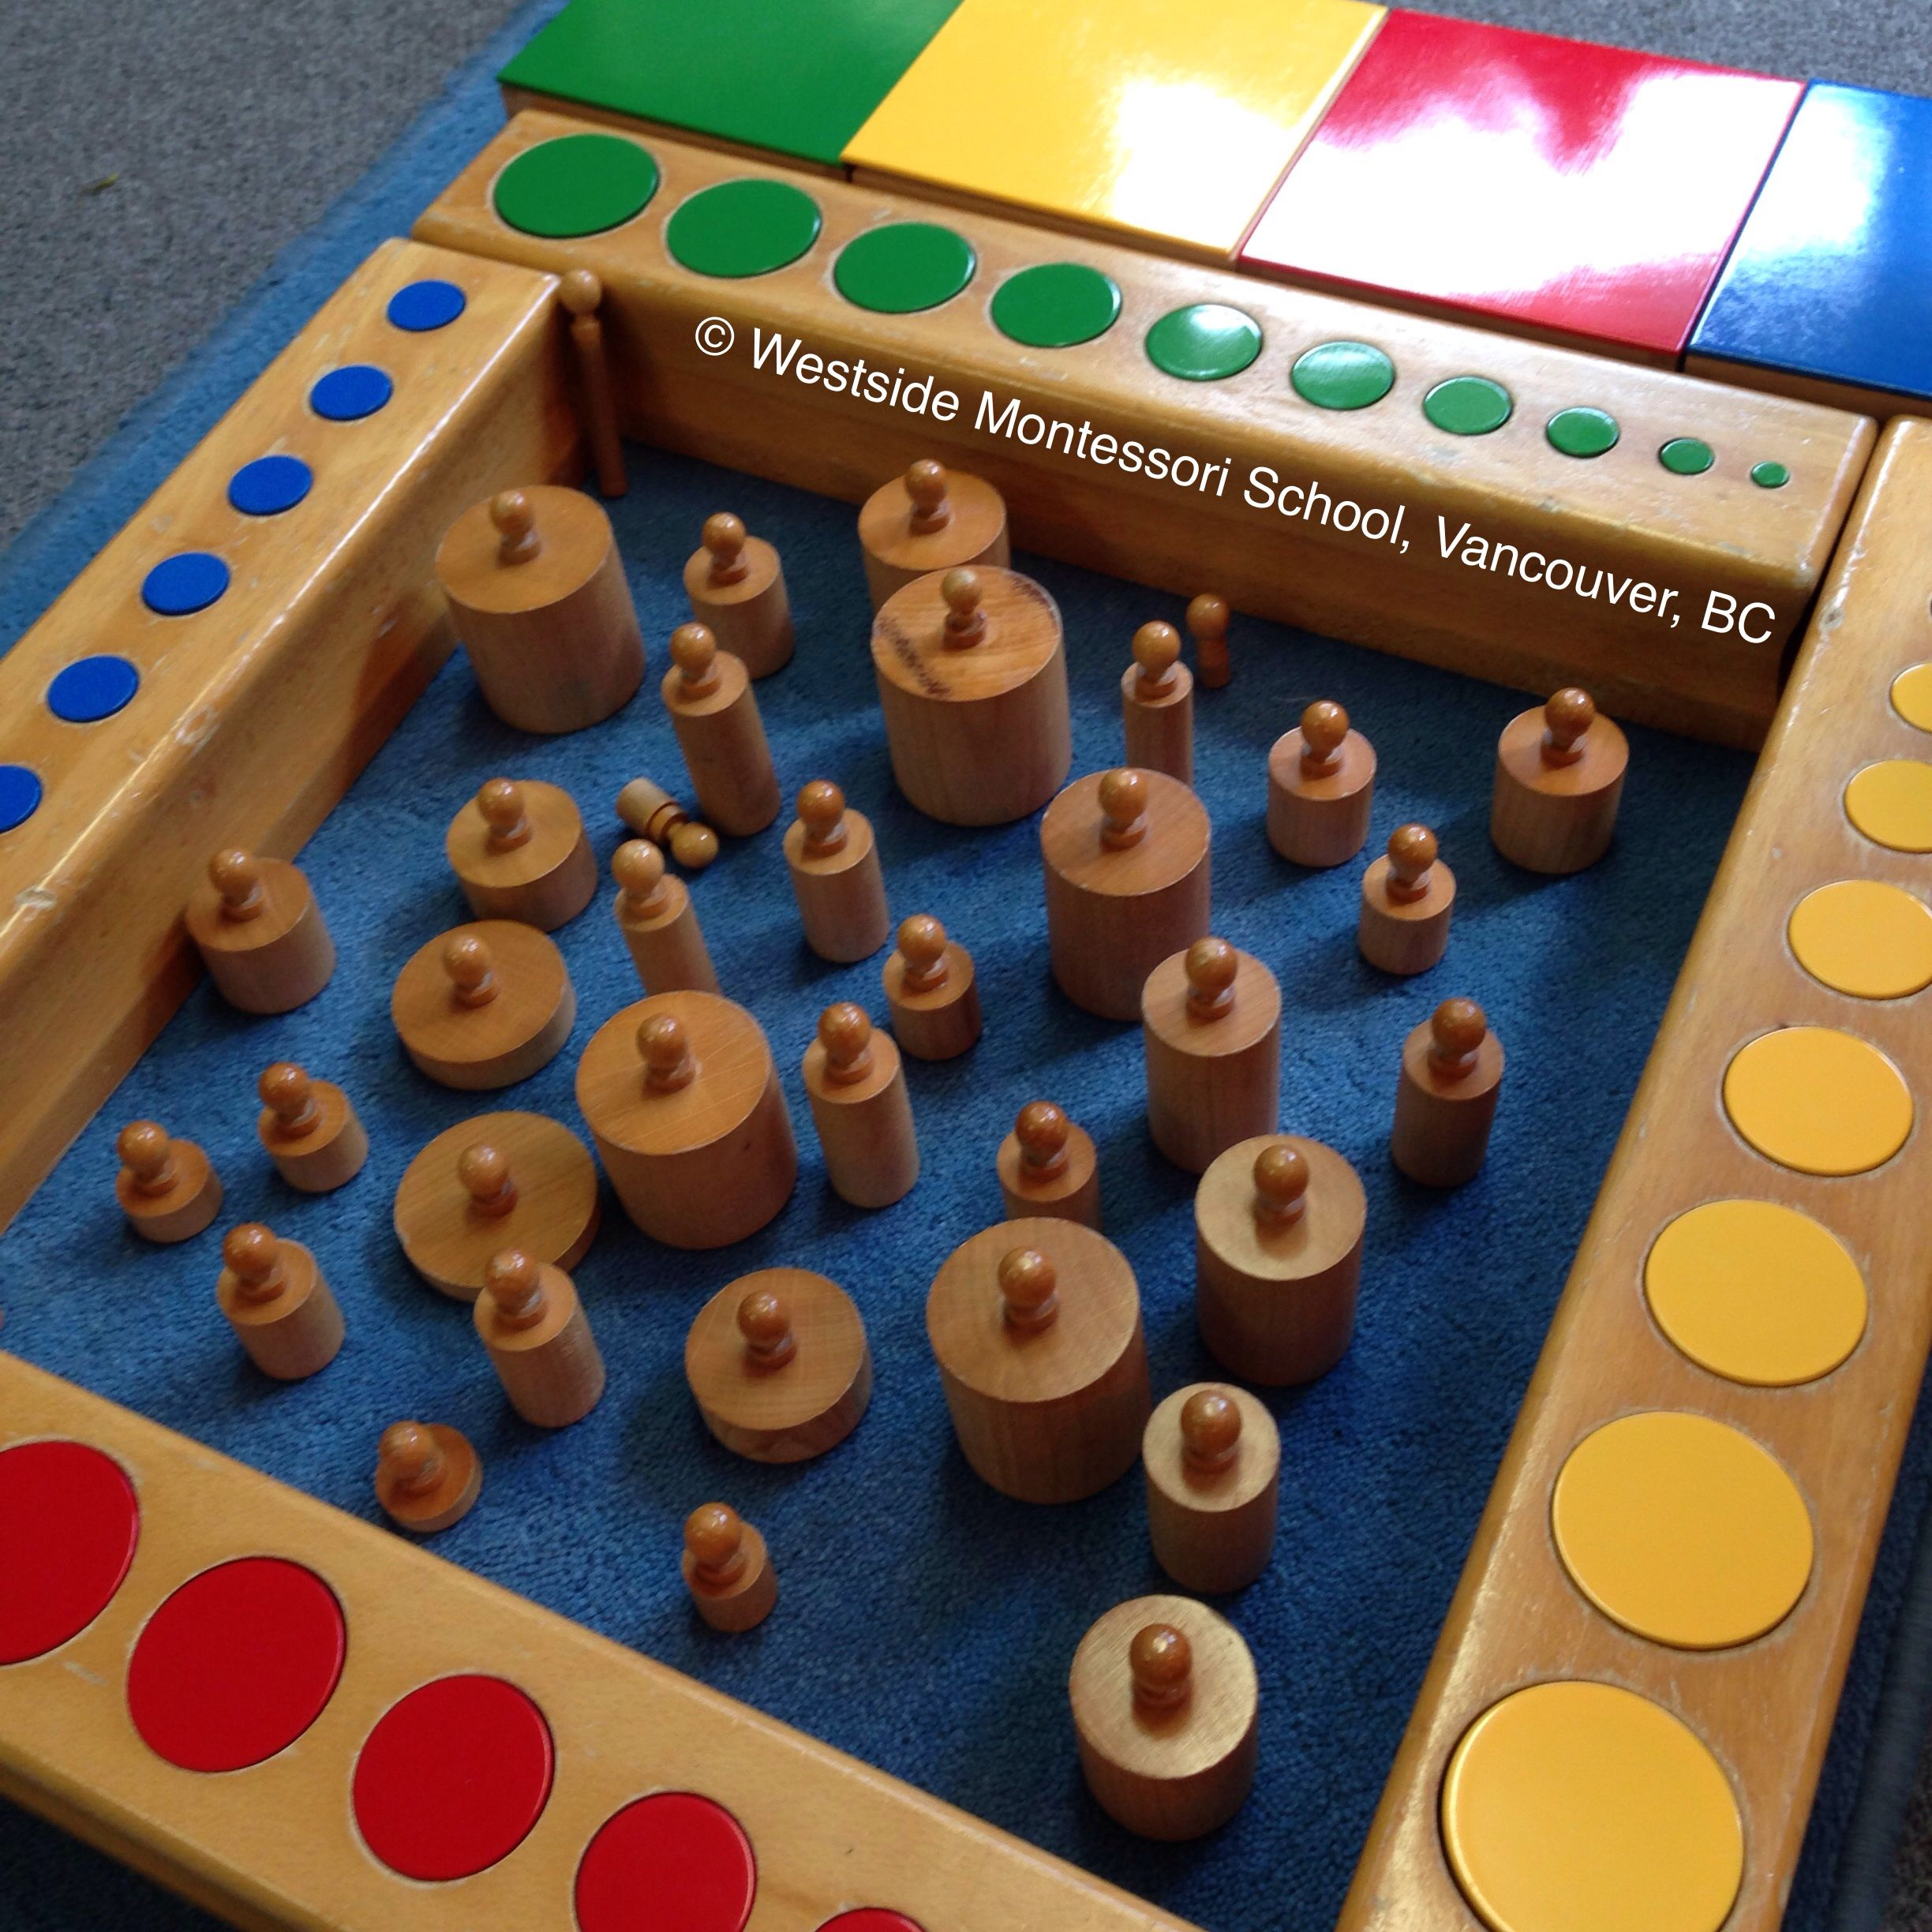 sensorial education Sensorial activities in the montessori environment develop and enhance sense perceptions and logical thinking that are vital to growing minds.